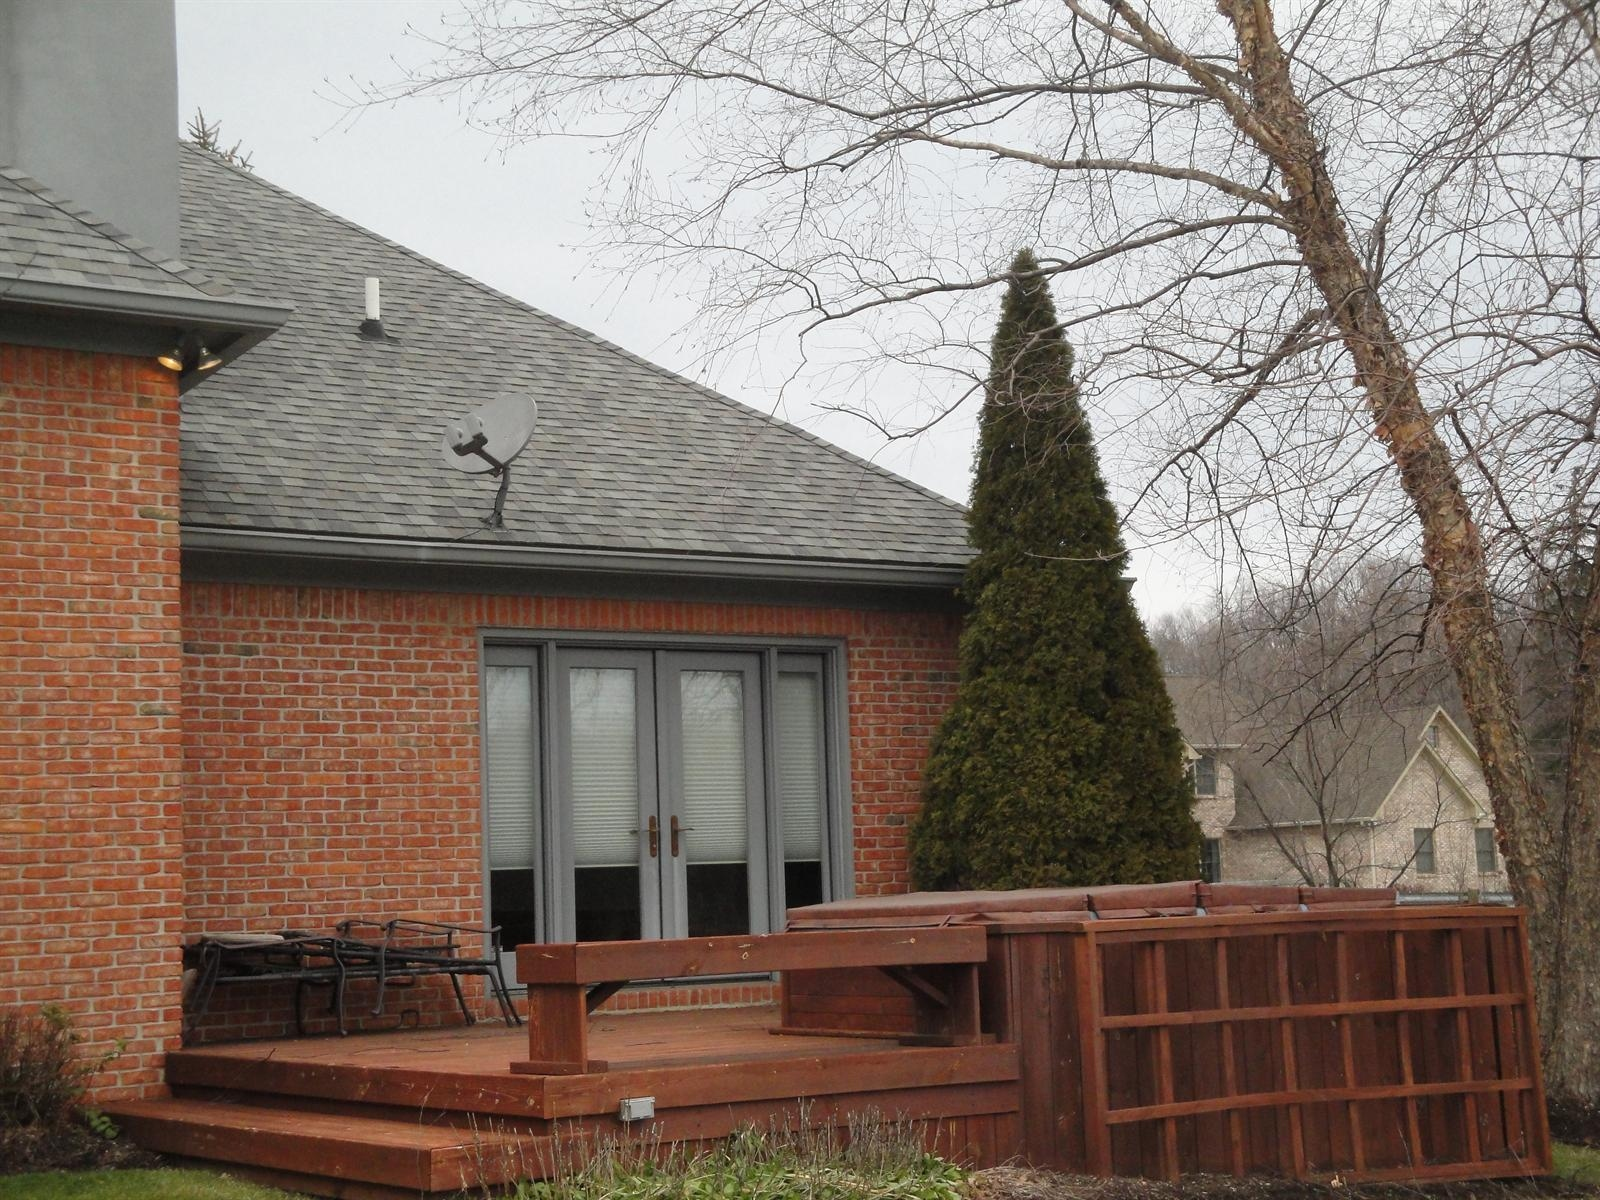 Real Estate Photography - 6533 Cherbourg Cir, # Cl, Indianapolis, IN, 46220 - Location 19